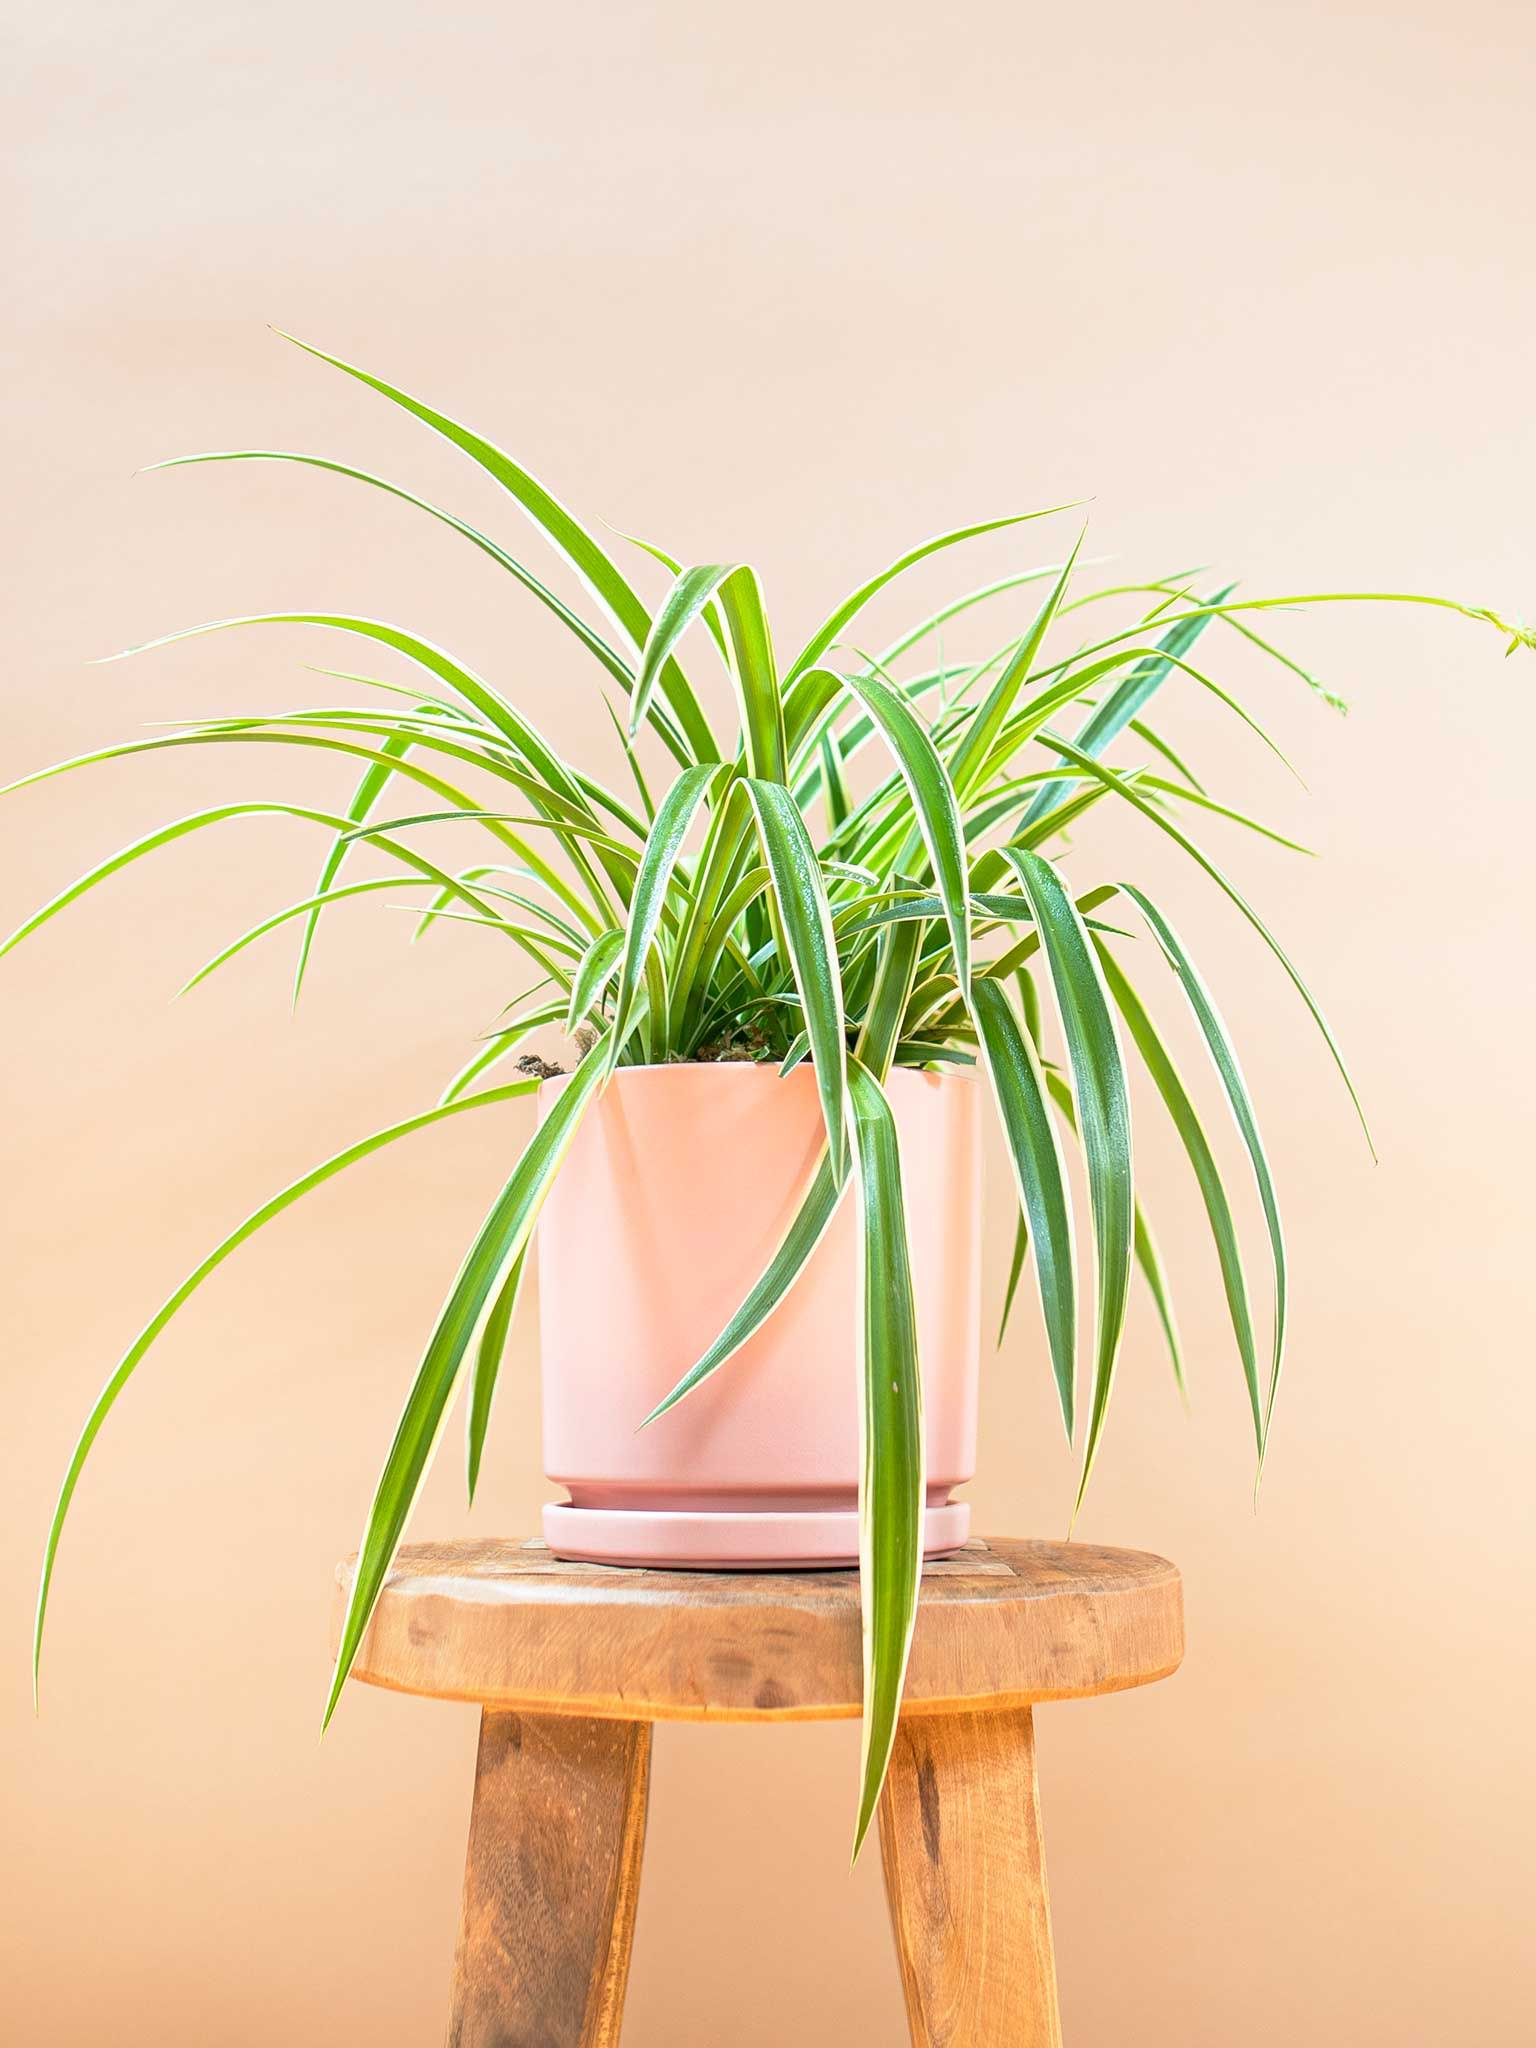 Reverse spider plant potted on a stool